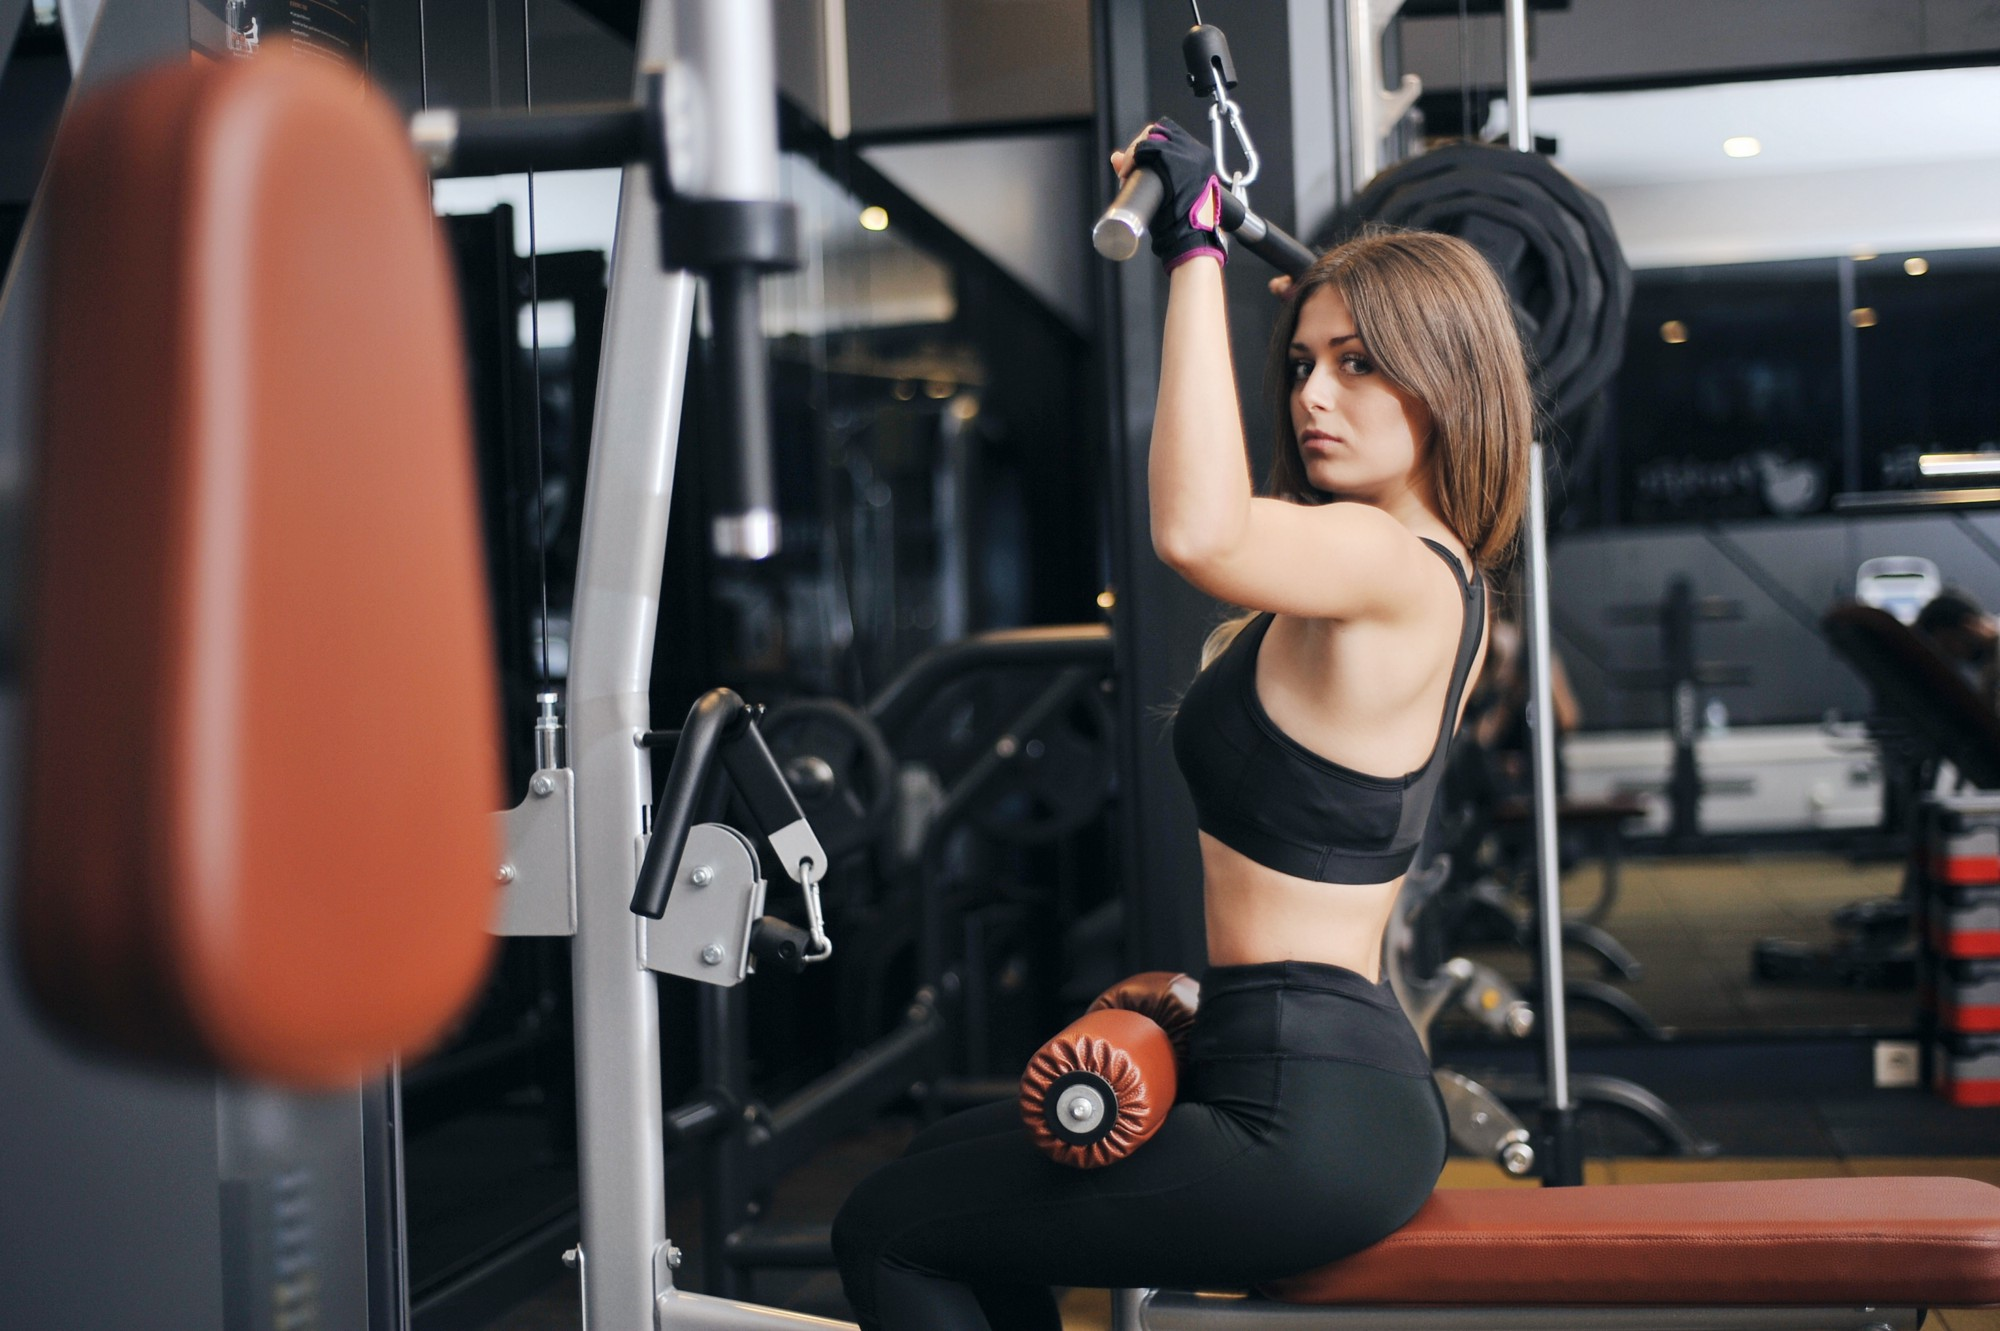 A woman lifting weights looks to her left with a skeptical expression on her face.